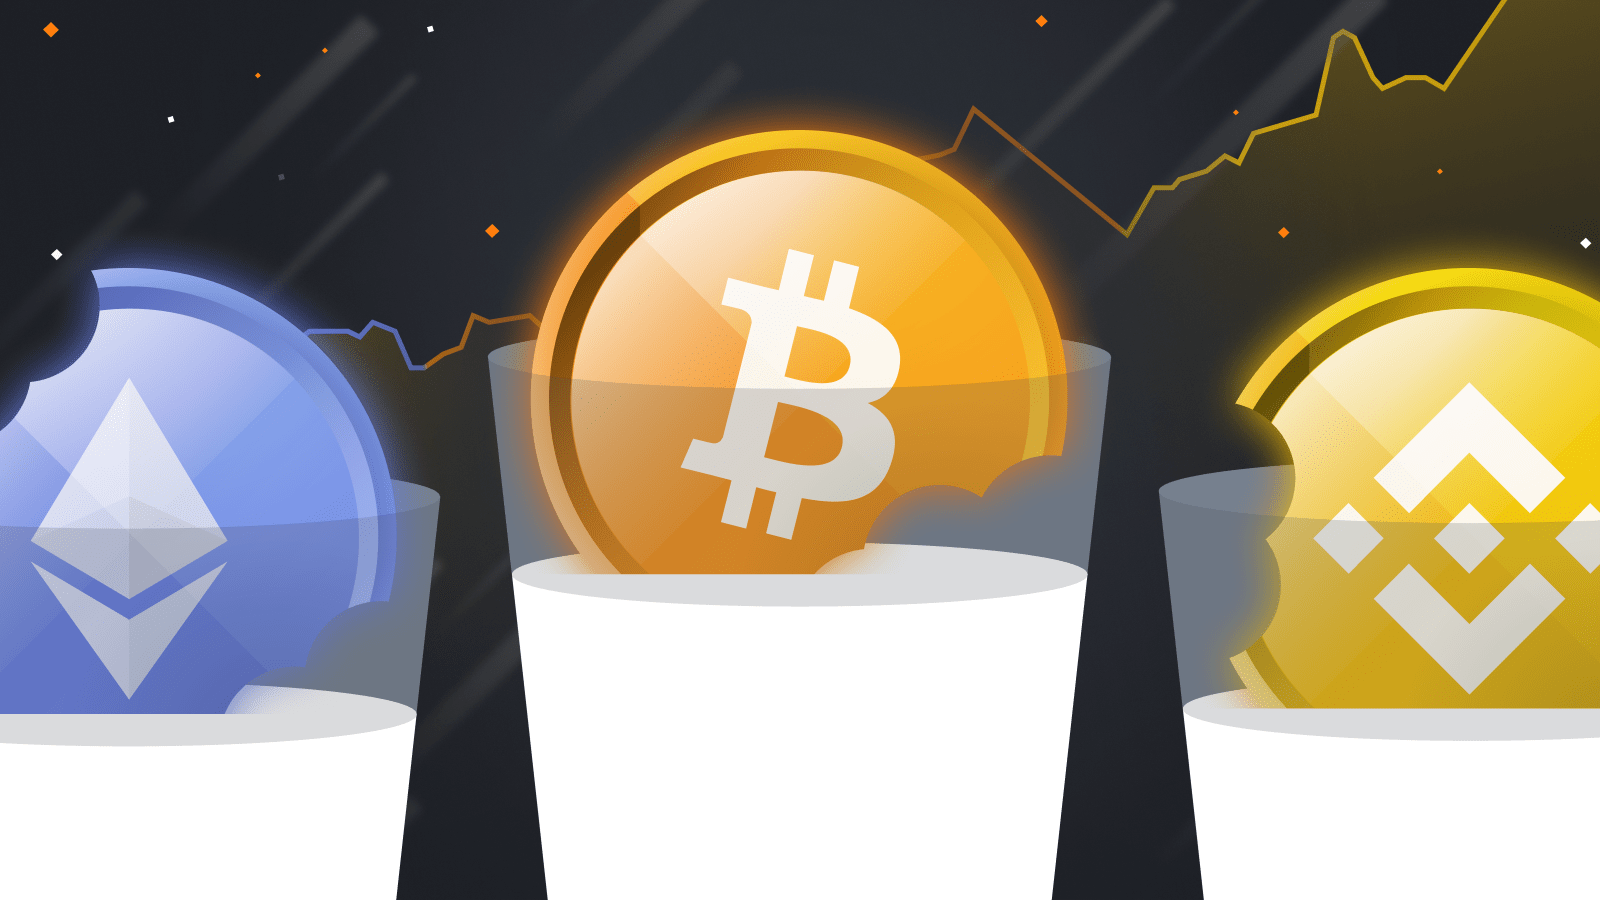 Bitcoin and Cryptocurrency Crunch: Should You Buy the Dip? Cryptocurrency Trading Signals, Strategies & Templates   DexStrats